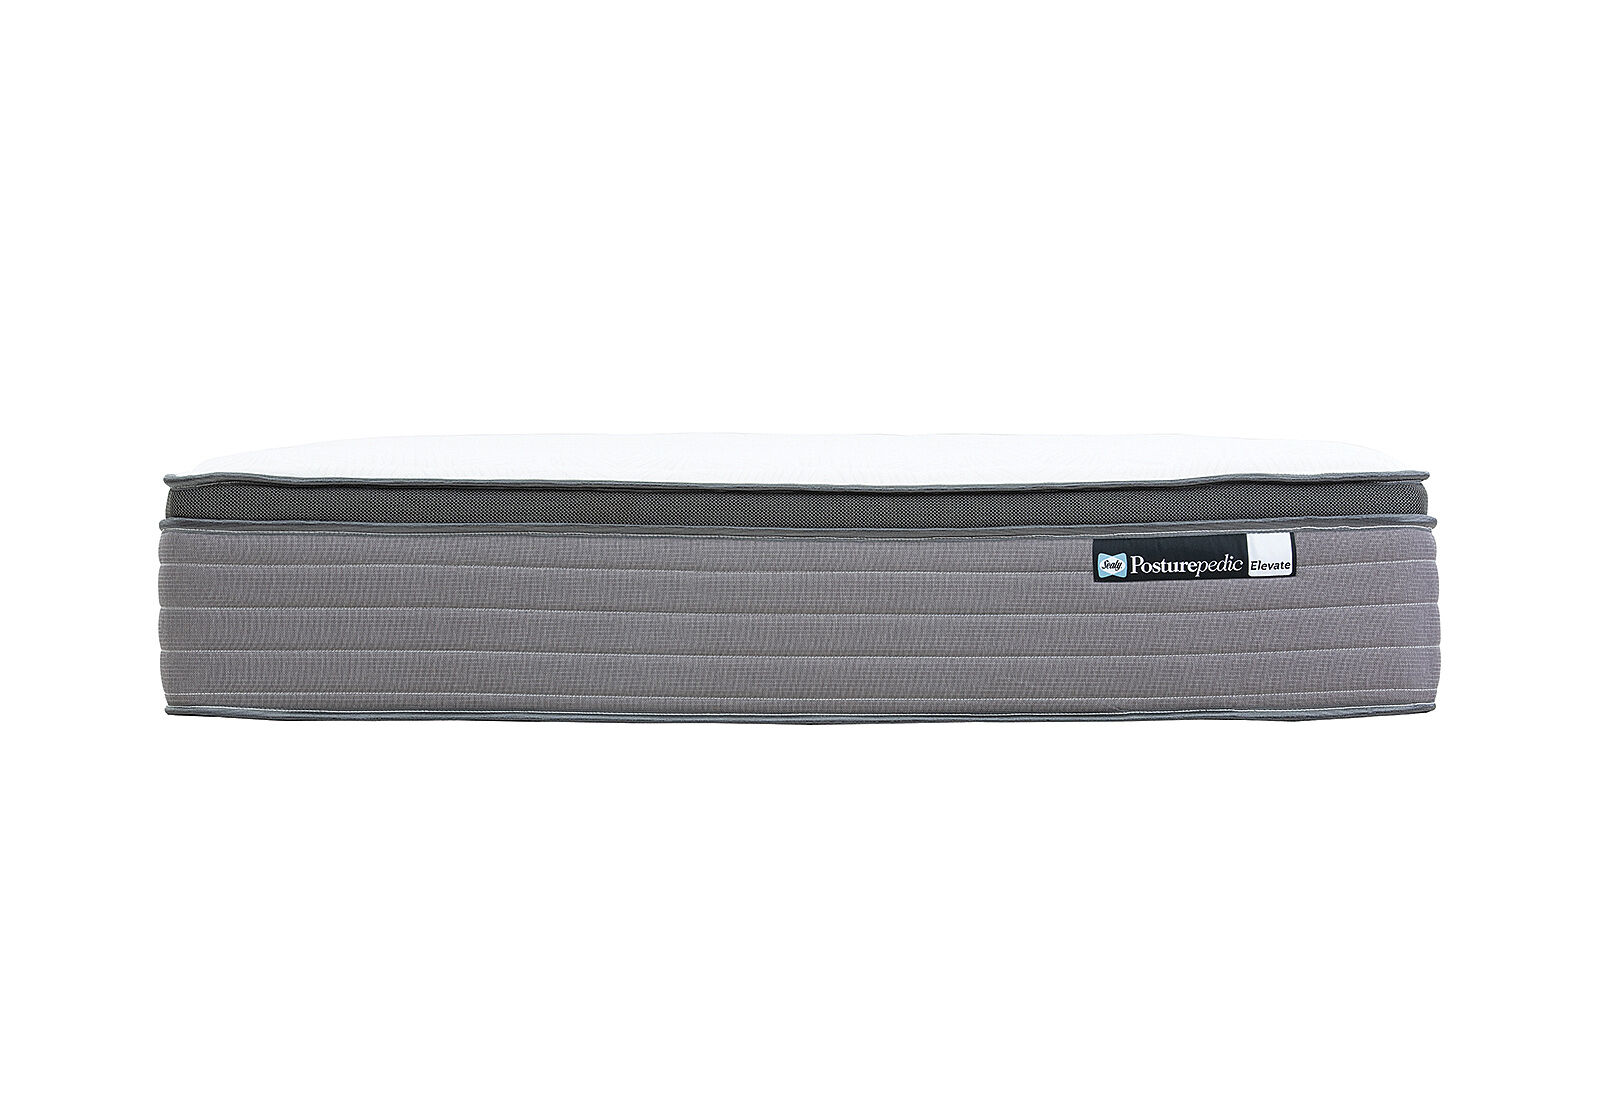 P/PEDIC ELEVATE SUPREME FLEX ULTRA PLUSH